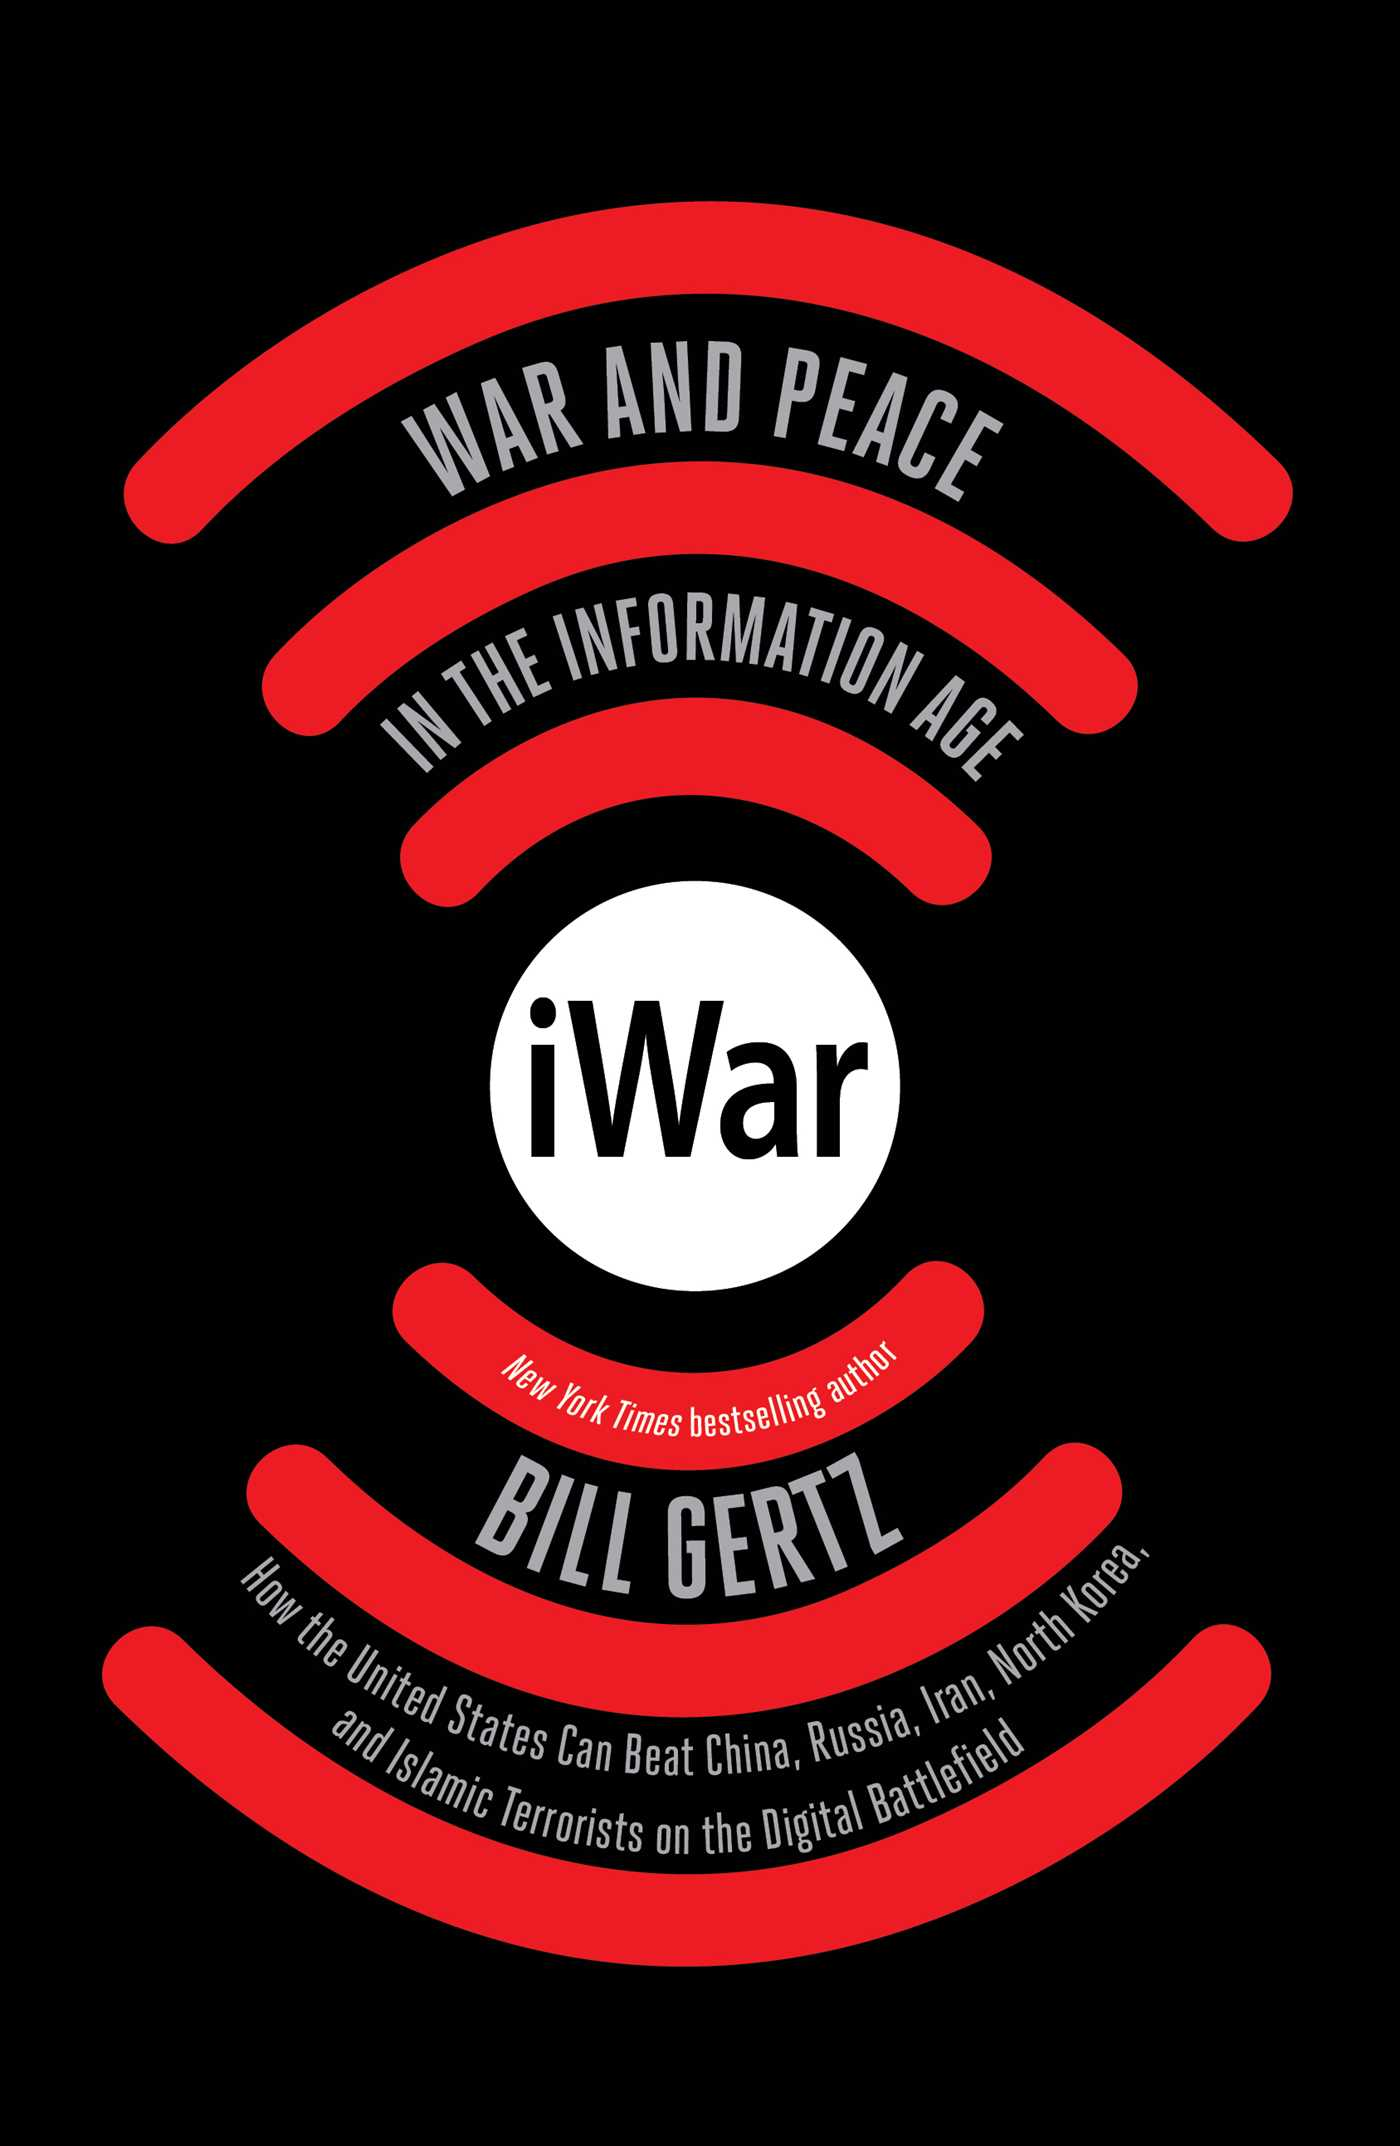 Best-selling Author, Bill Gertz Visits with New Book, iWar